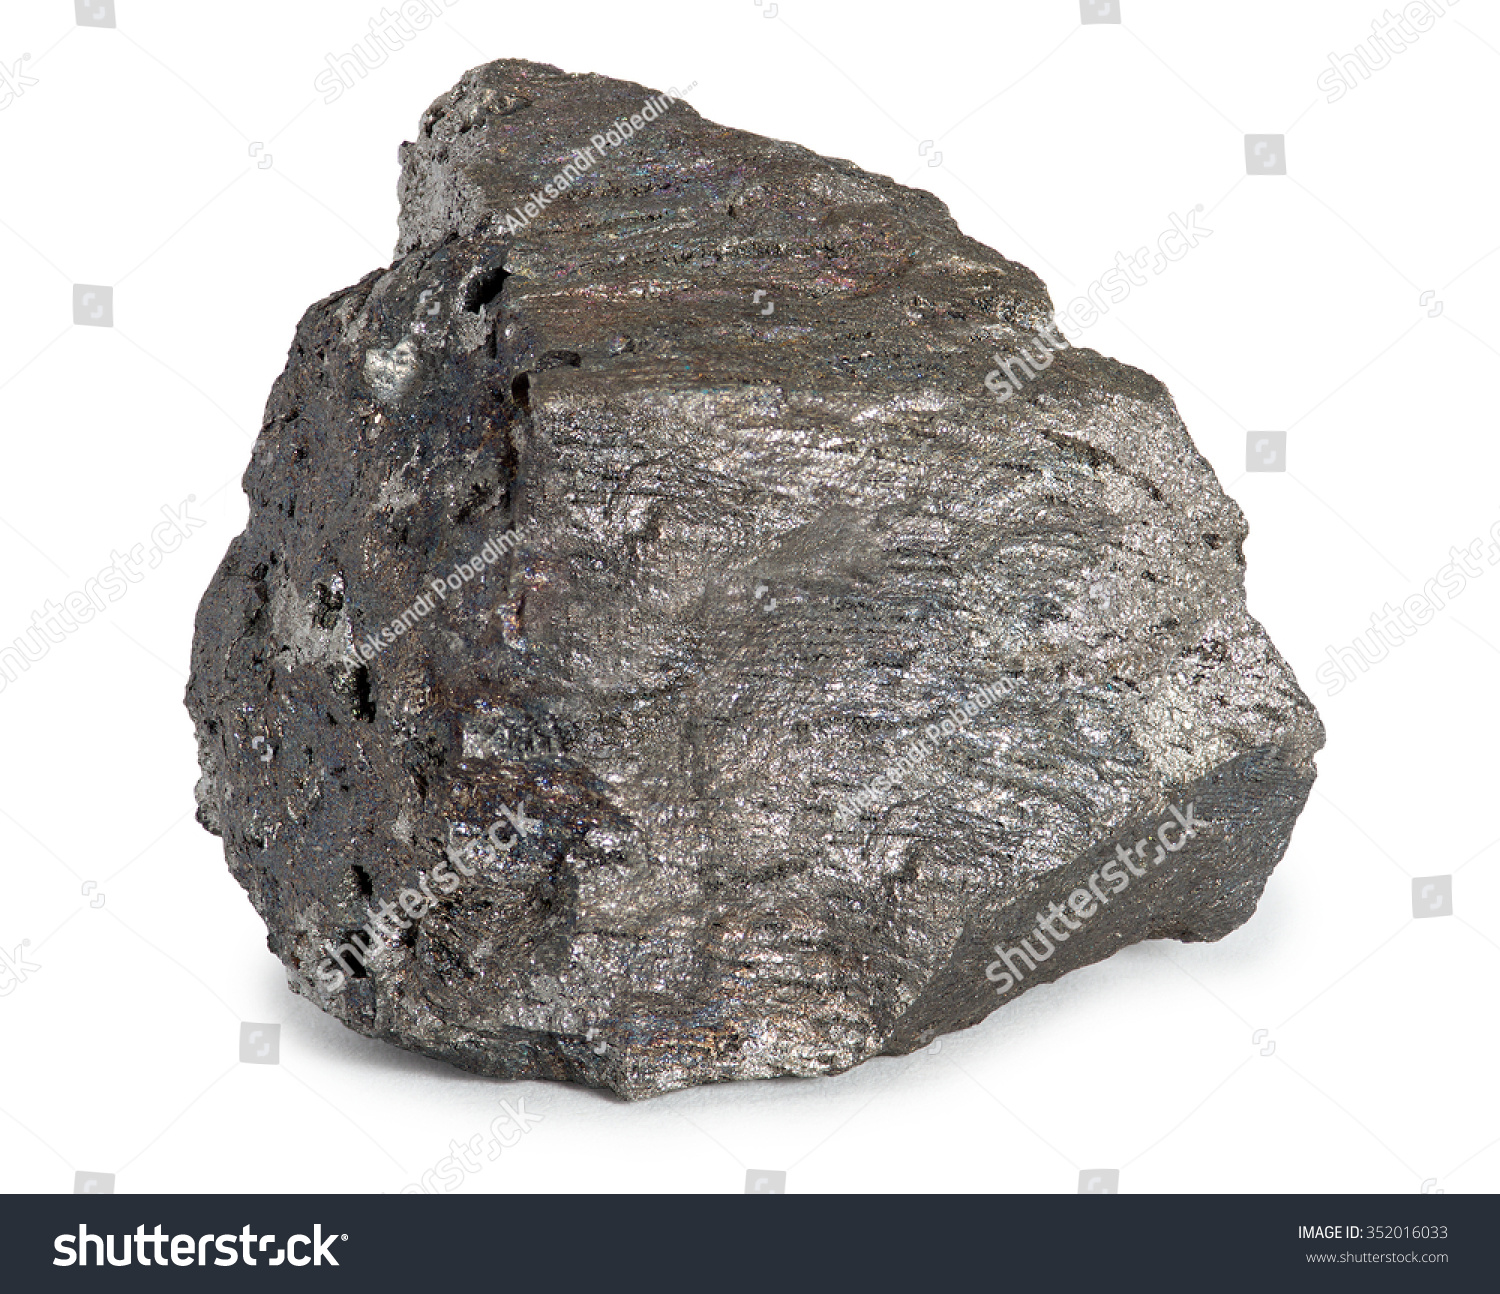 metallic minerals What is the difference between metallic and non-metallic minerals metallic minerals are quite ductile non-metallic minerals are not ductile and can be.